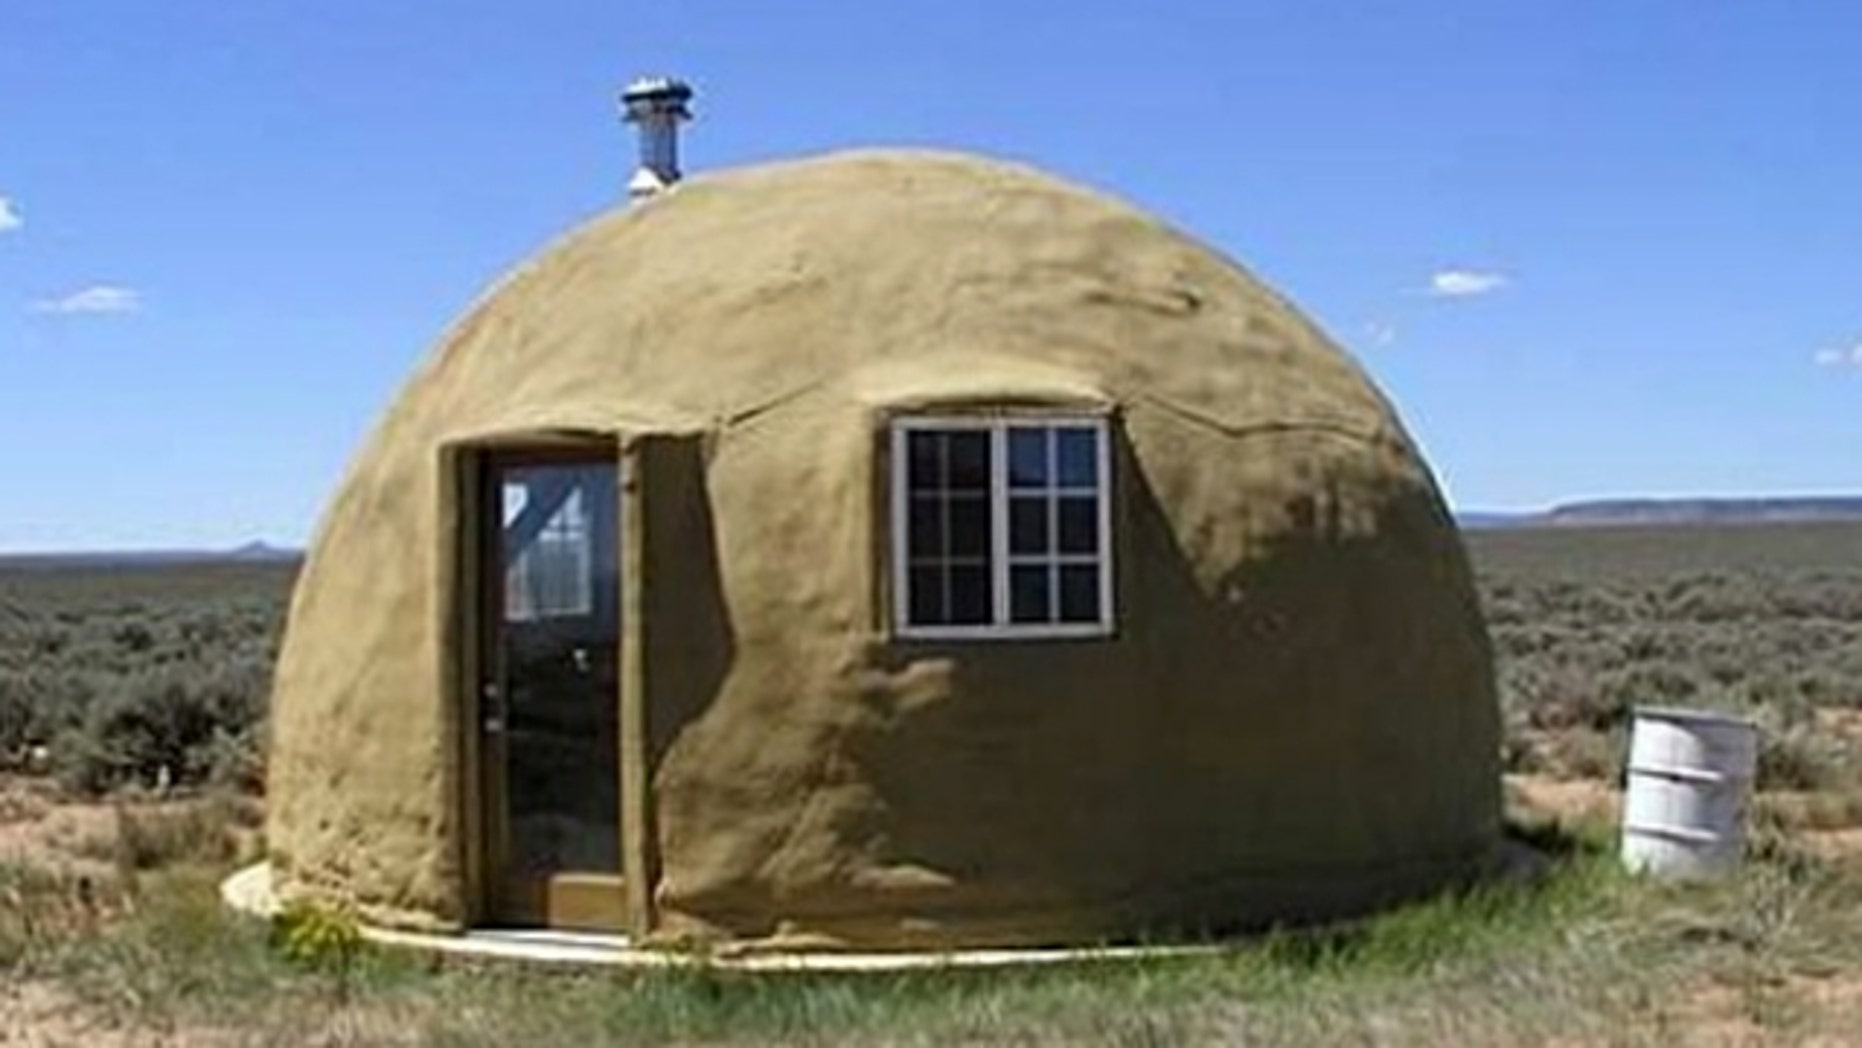 Off The Grid Dome Home On Sale For 74g Fox News